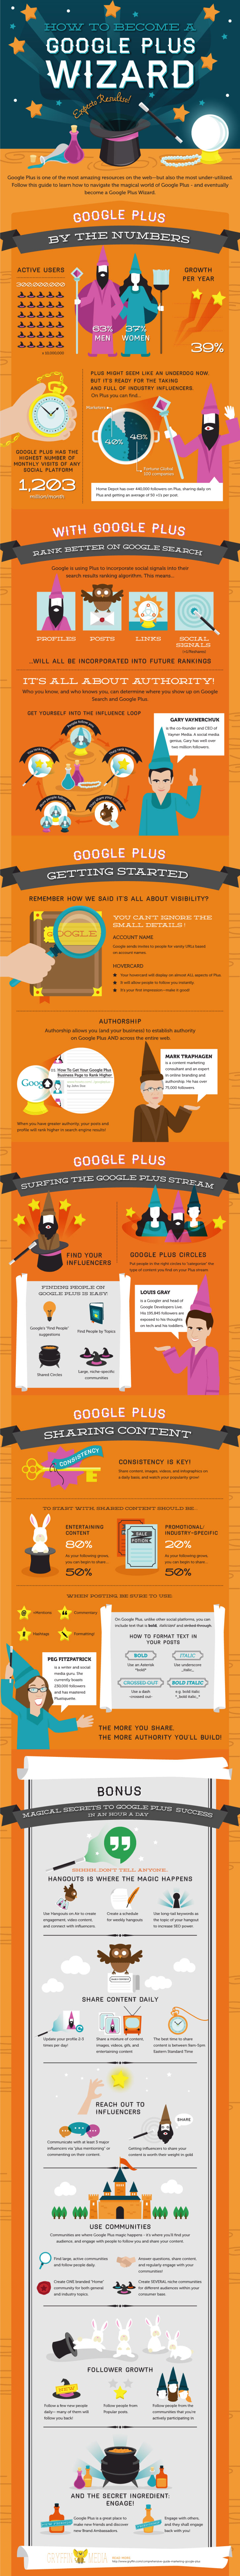 how-to-become-a-google-plus-wizard